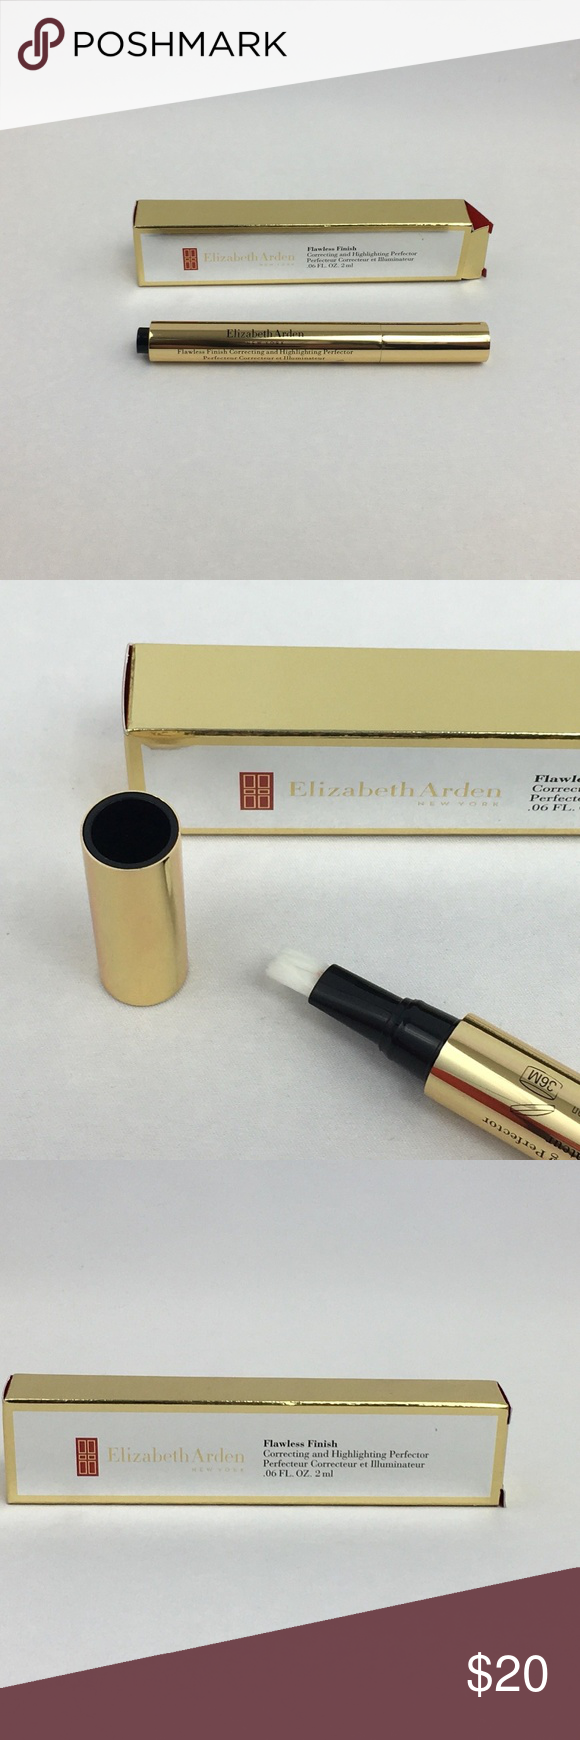 Elizabeth Arden Flawless Finish Medium 03 New Brand Elizabeth Arden Color Medium 03 Line Flawless Finish Type correcting and highlighting perfector Size 0.06 fl oz   Condition New Elizabeth Arden Makeup Concealer